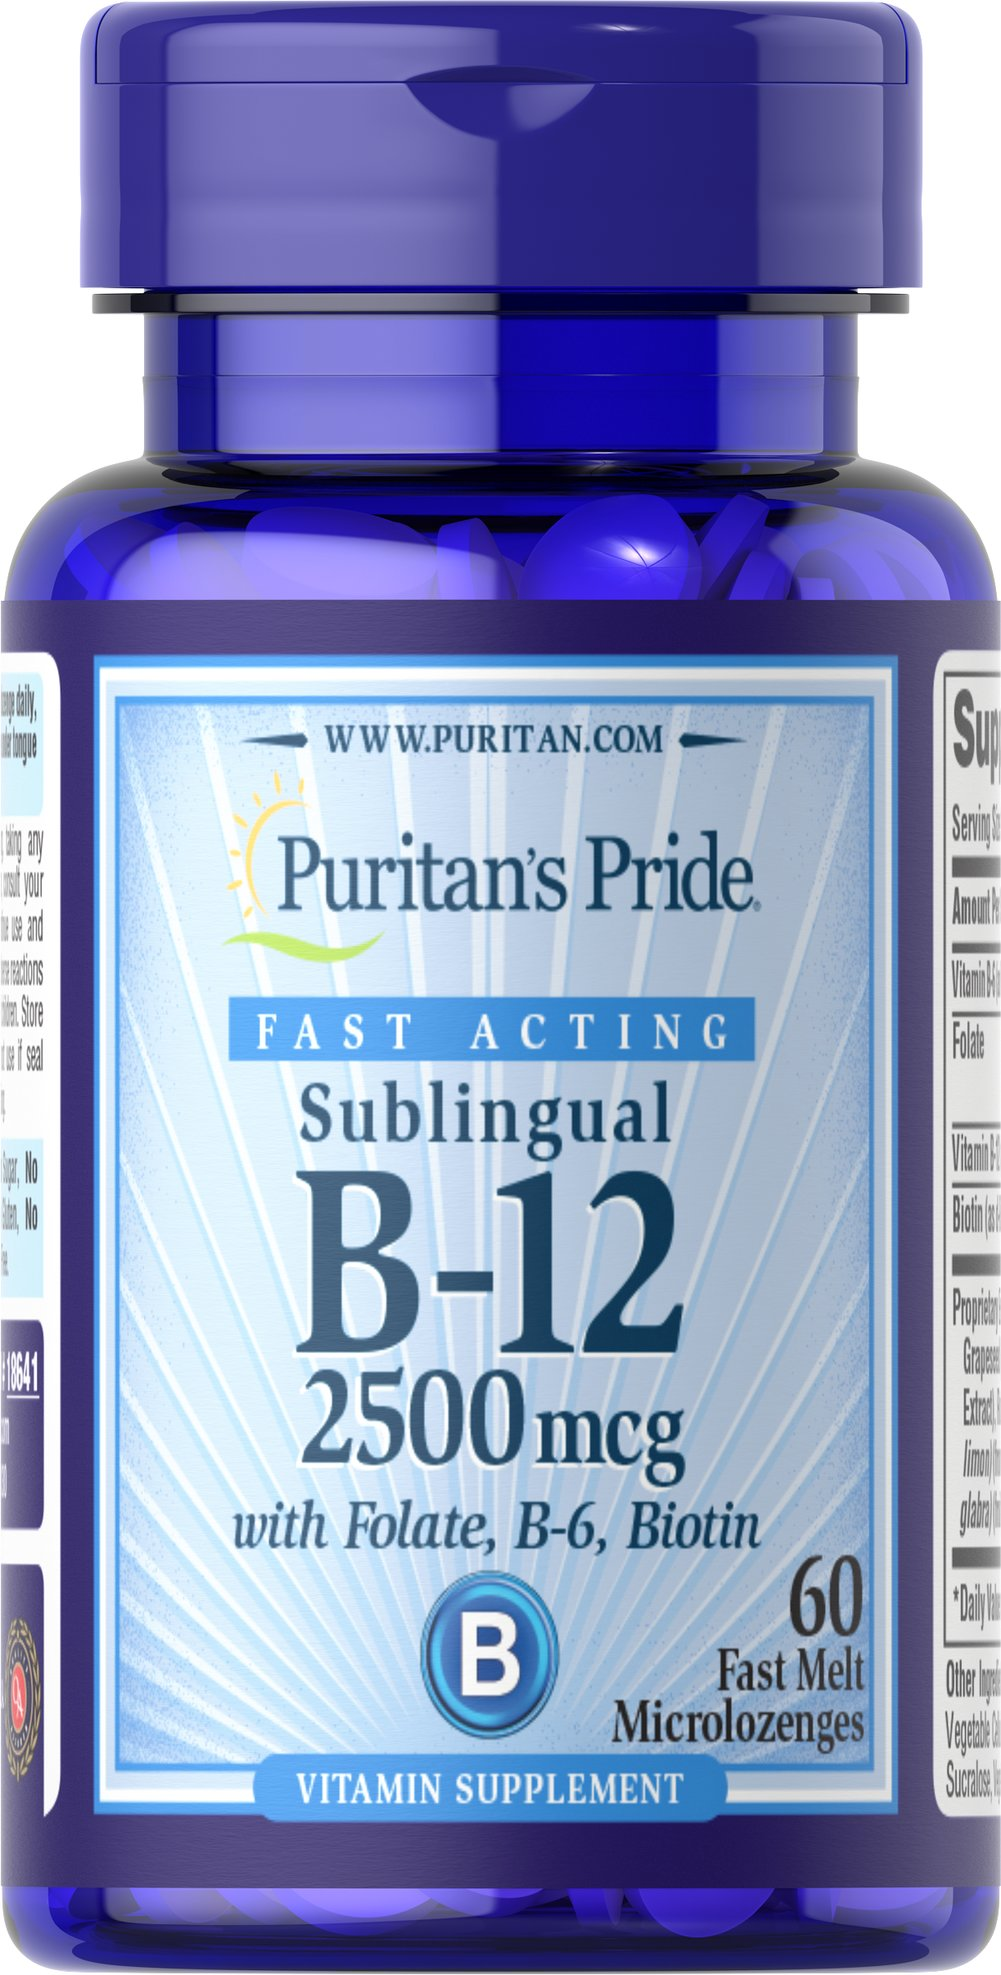 Vitamin B-12 2500 mcg Sublingual with Folic Acid, Vitamin B-6 and Biotin  60 Microlozenges 2500 mcg $20.99